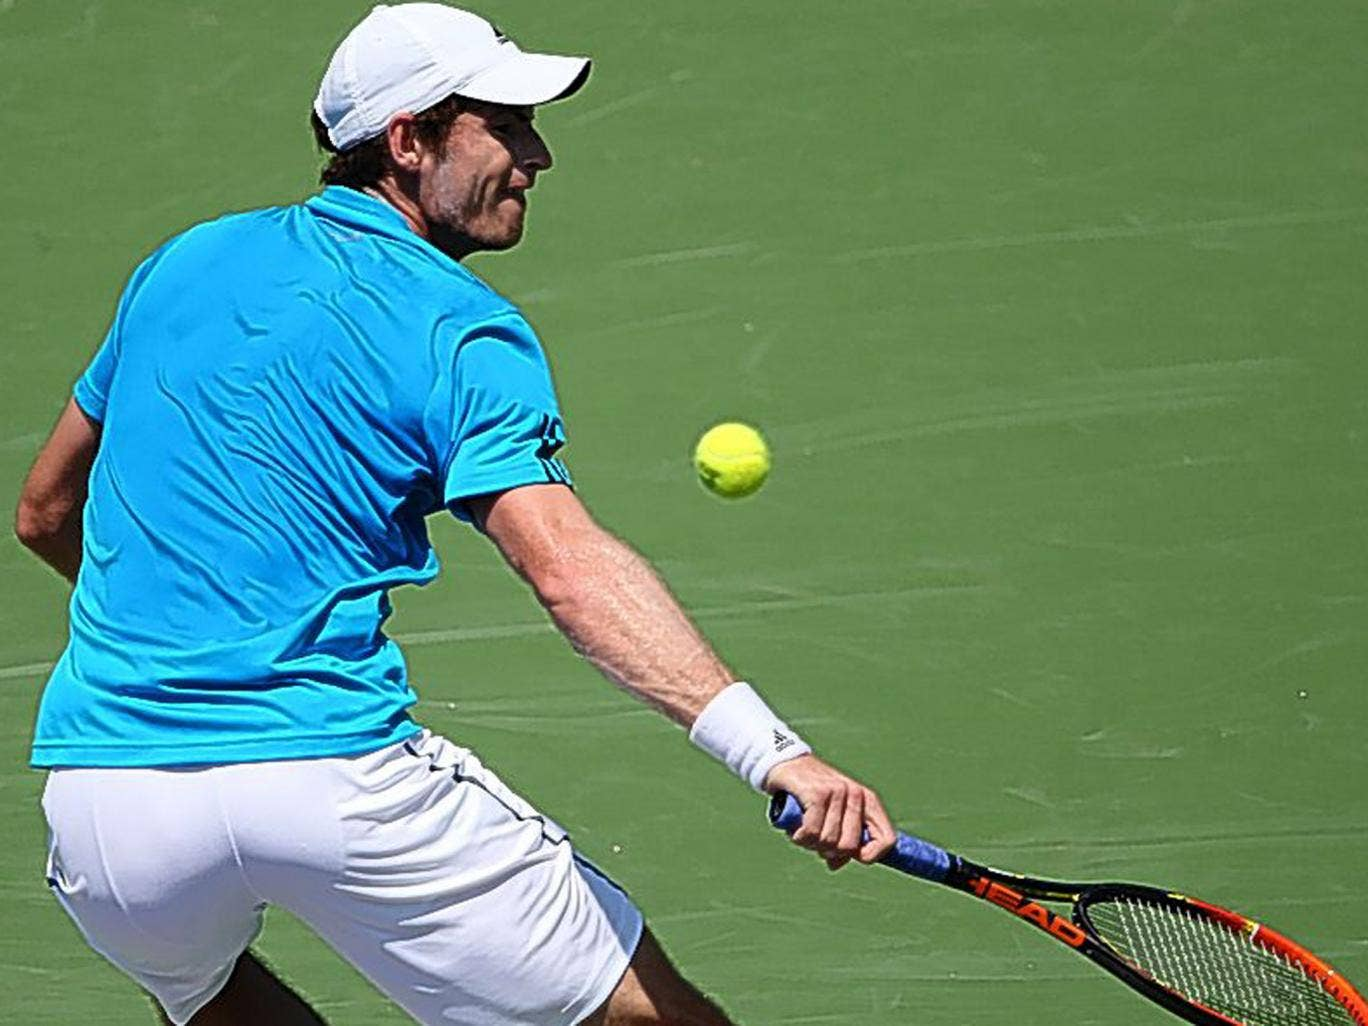 Andy Murray took just 73 minutes to beat Feliciano Lopez in the Miami Masters